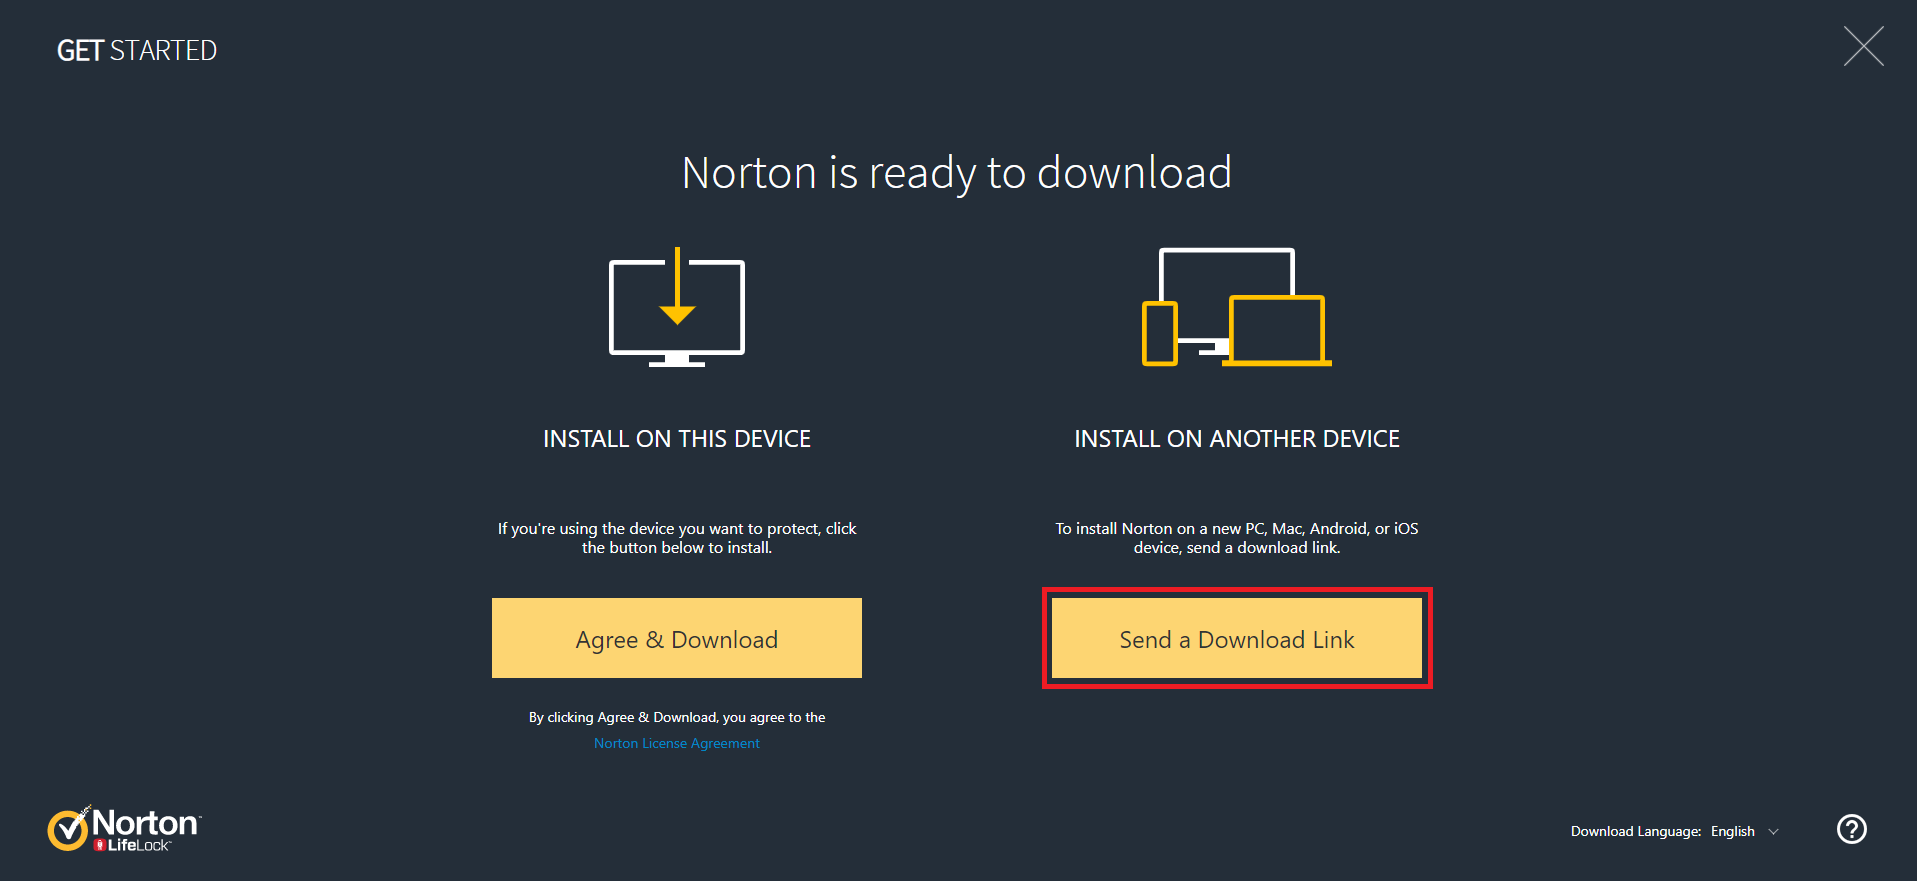 Install Norton to another device